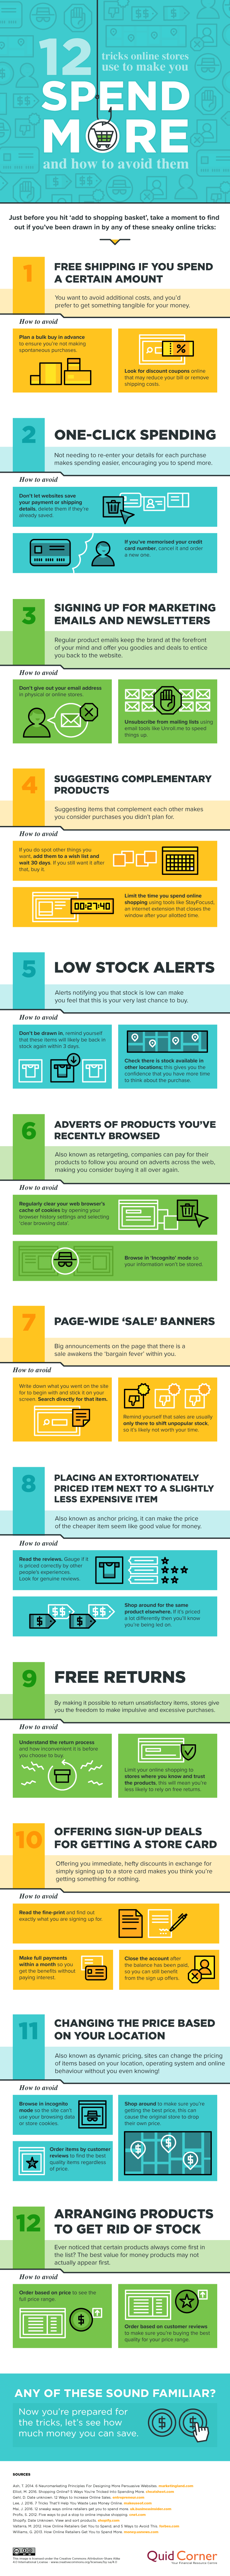 Tricks Online Stores Use to Make You Spend More and How to Avoid Them infographic